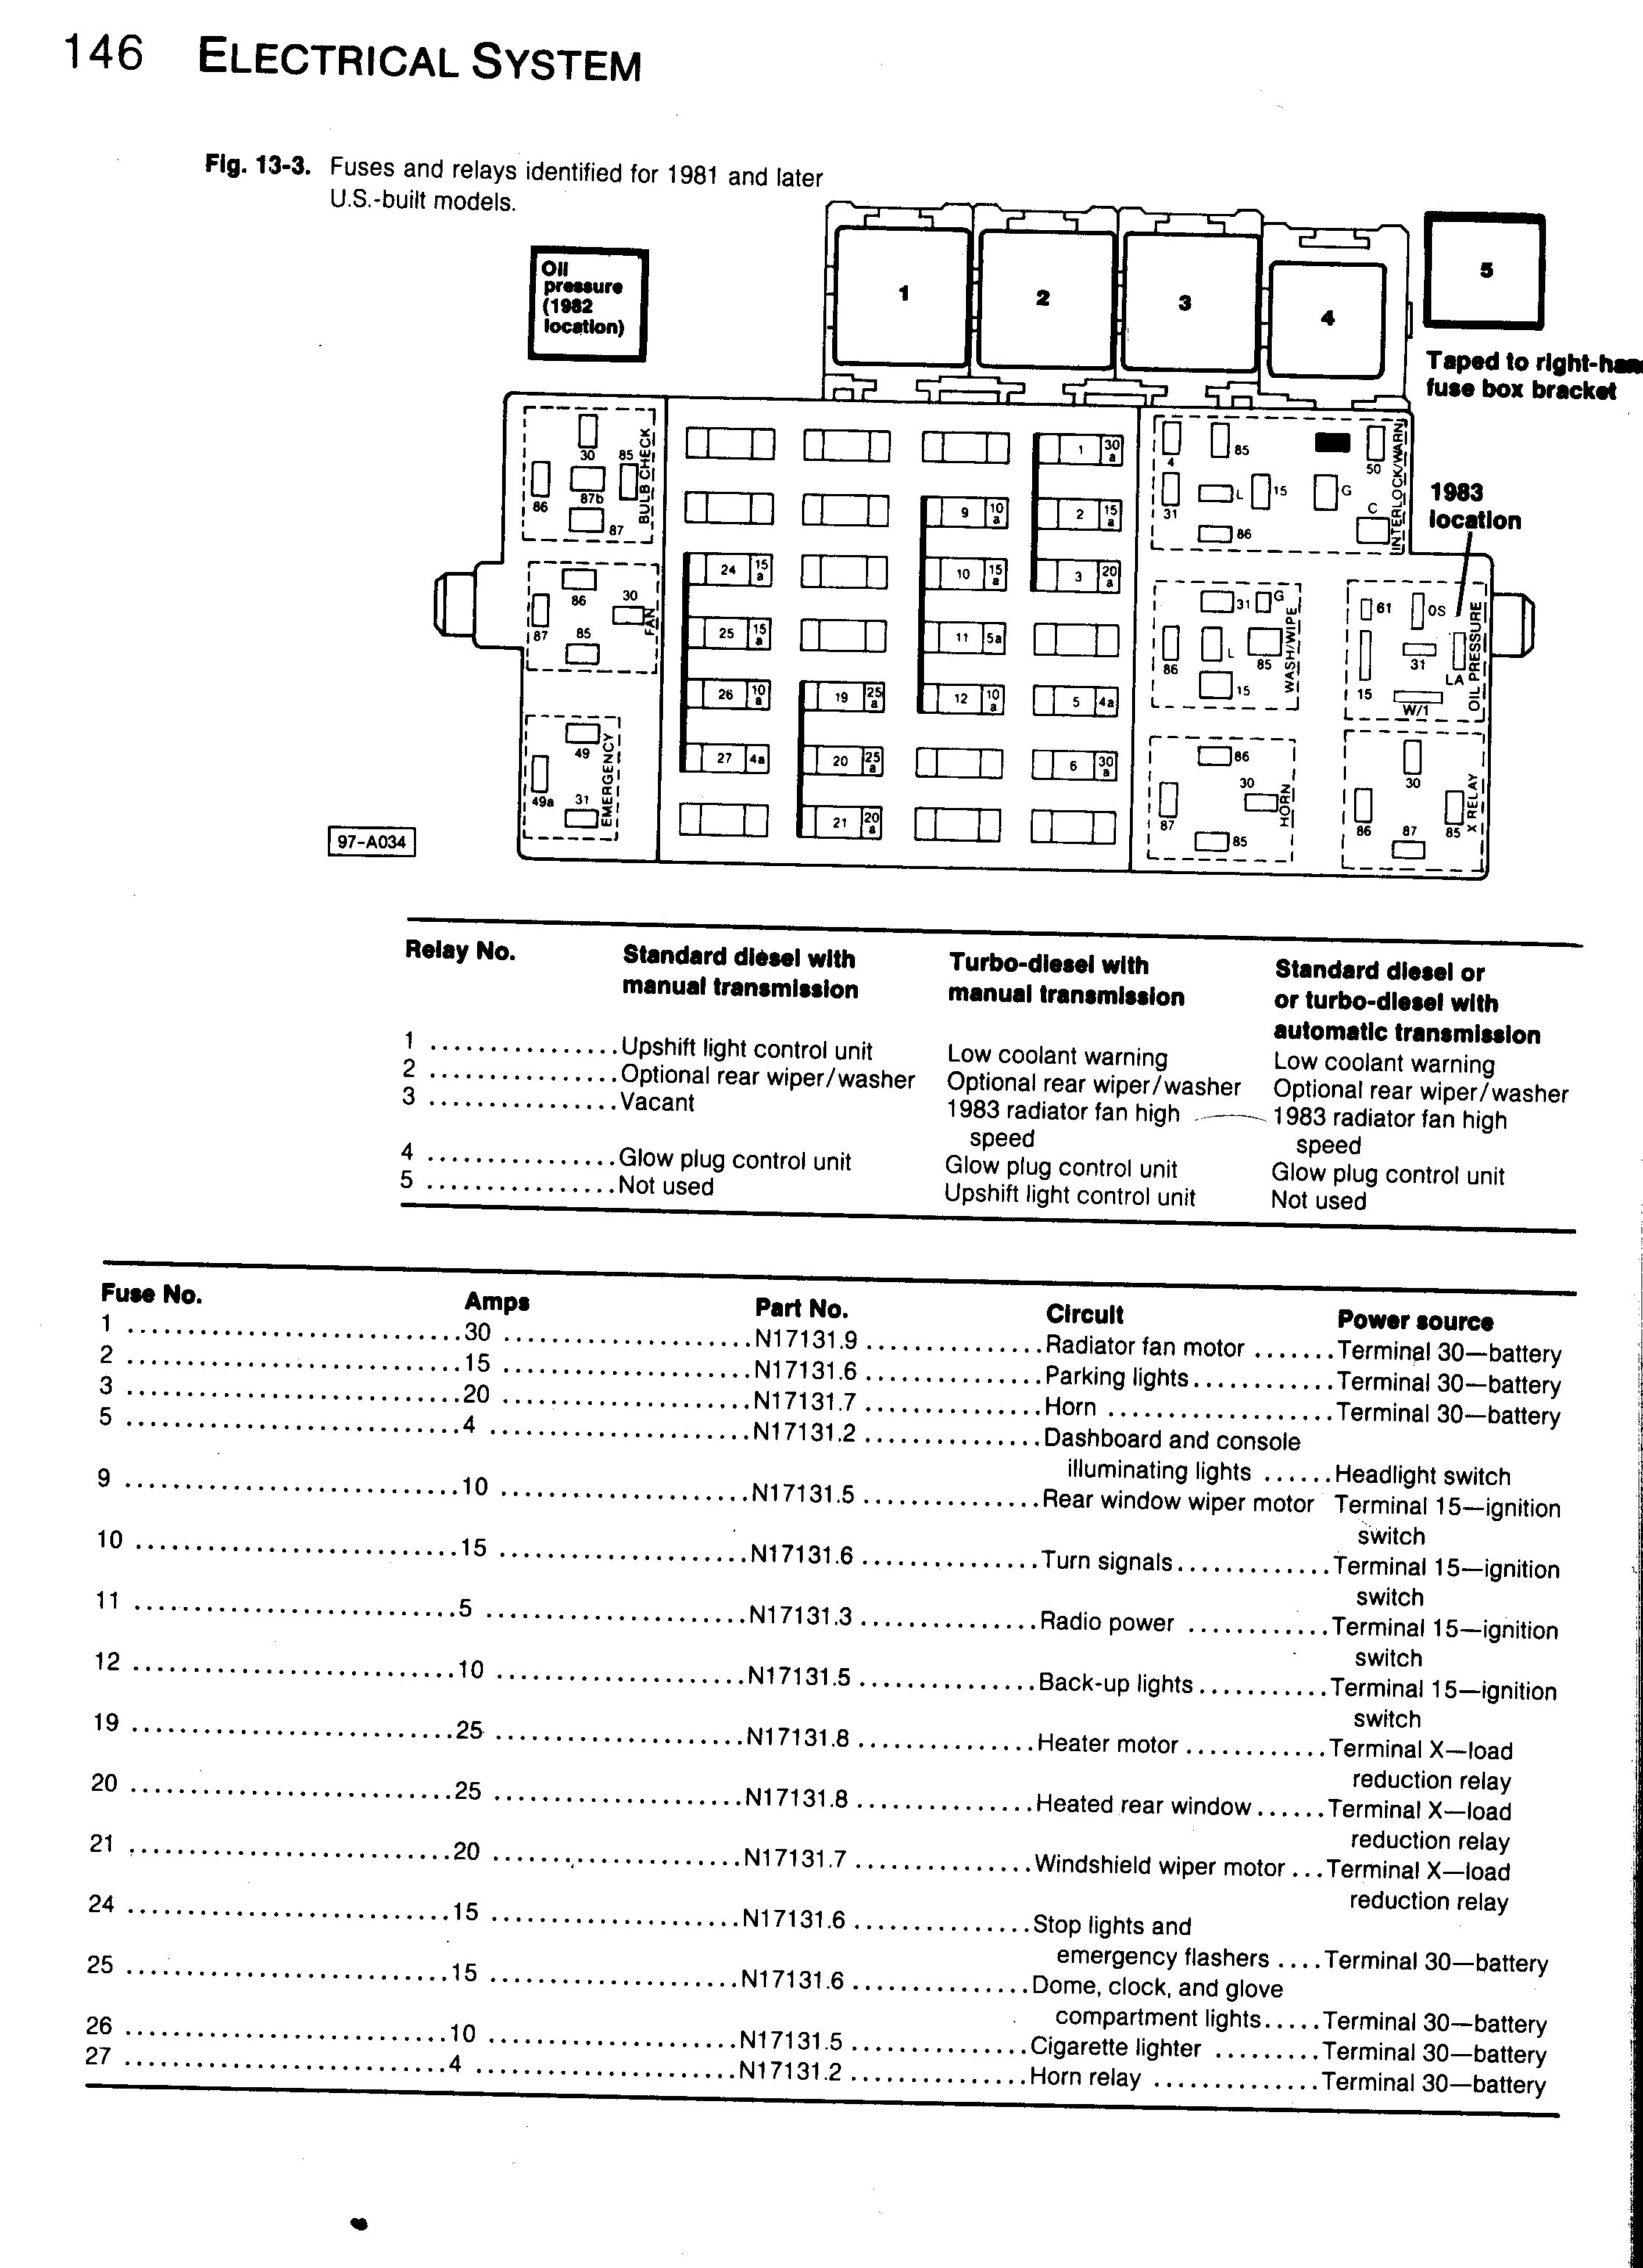 Vw Mk2 Fuse Box Diagram 23 Wiring Images Diagrams 2007 Jetta